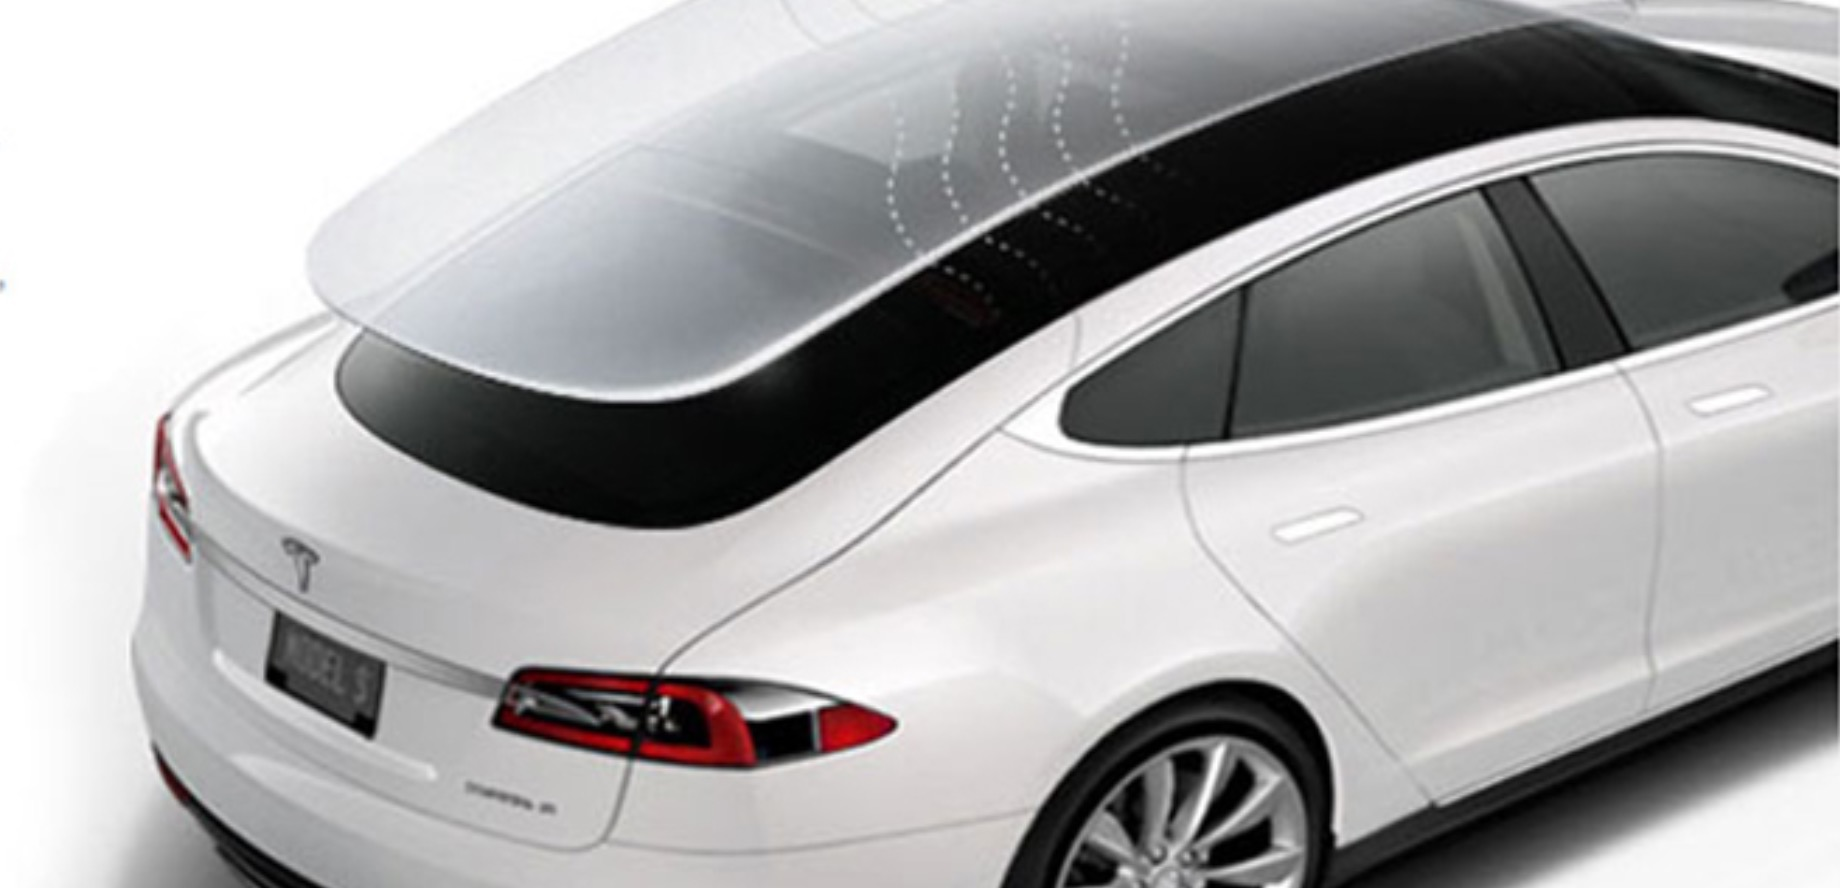 Tesla has new glass technology for noise reduction, temperature control,  and more - Electrek